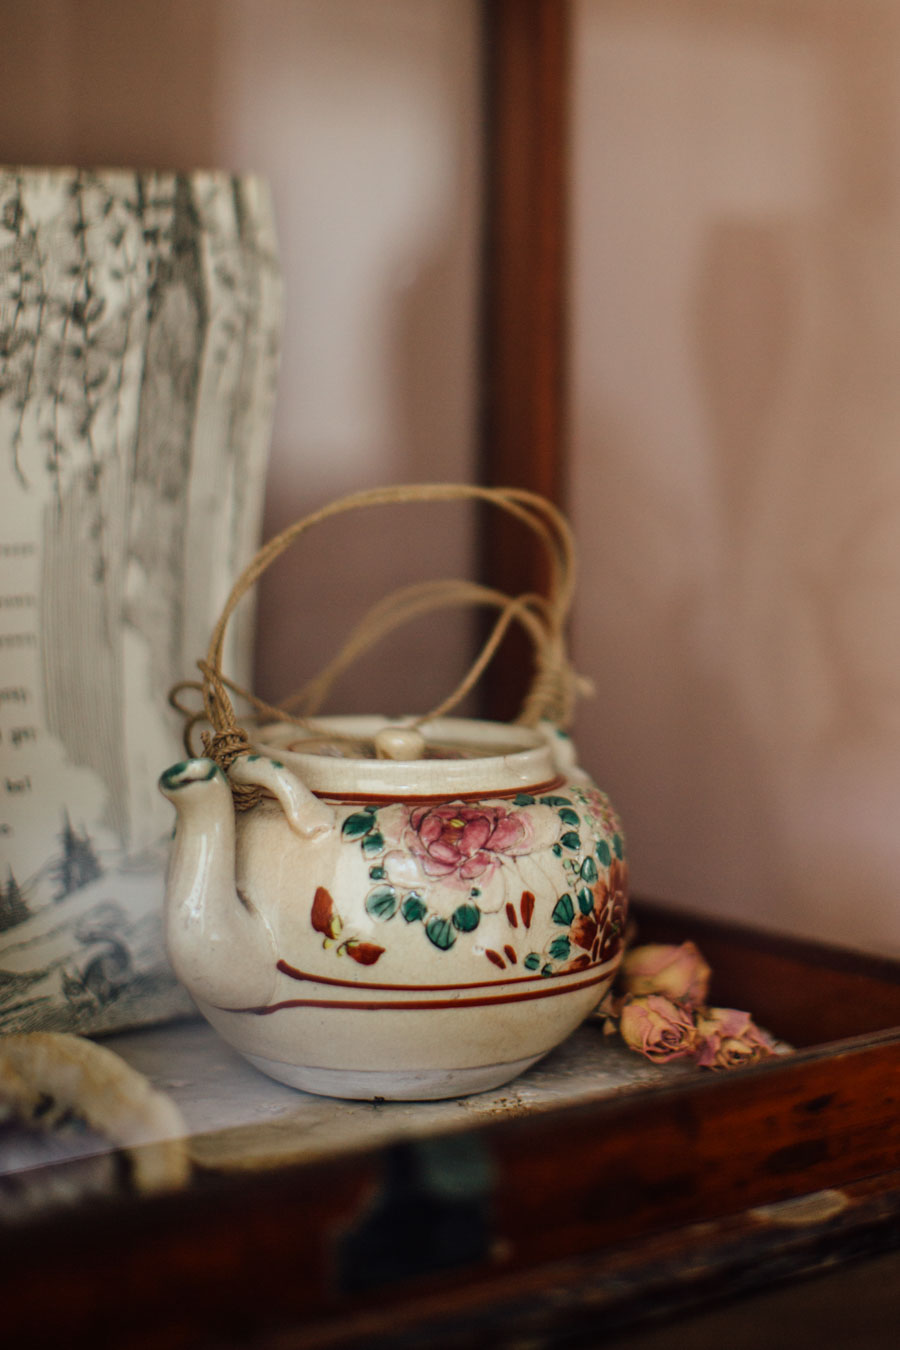 Styling with antique ceramics